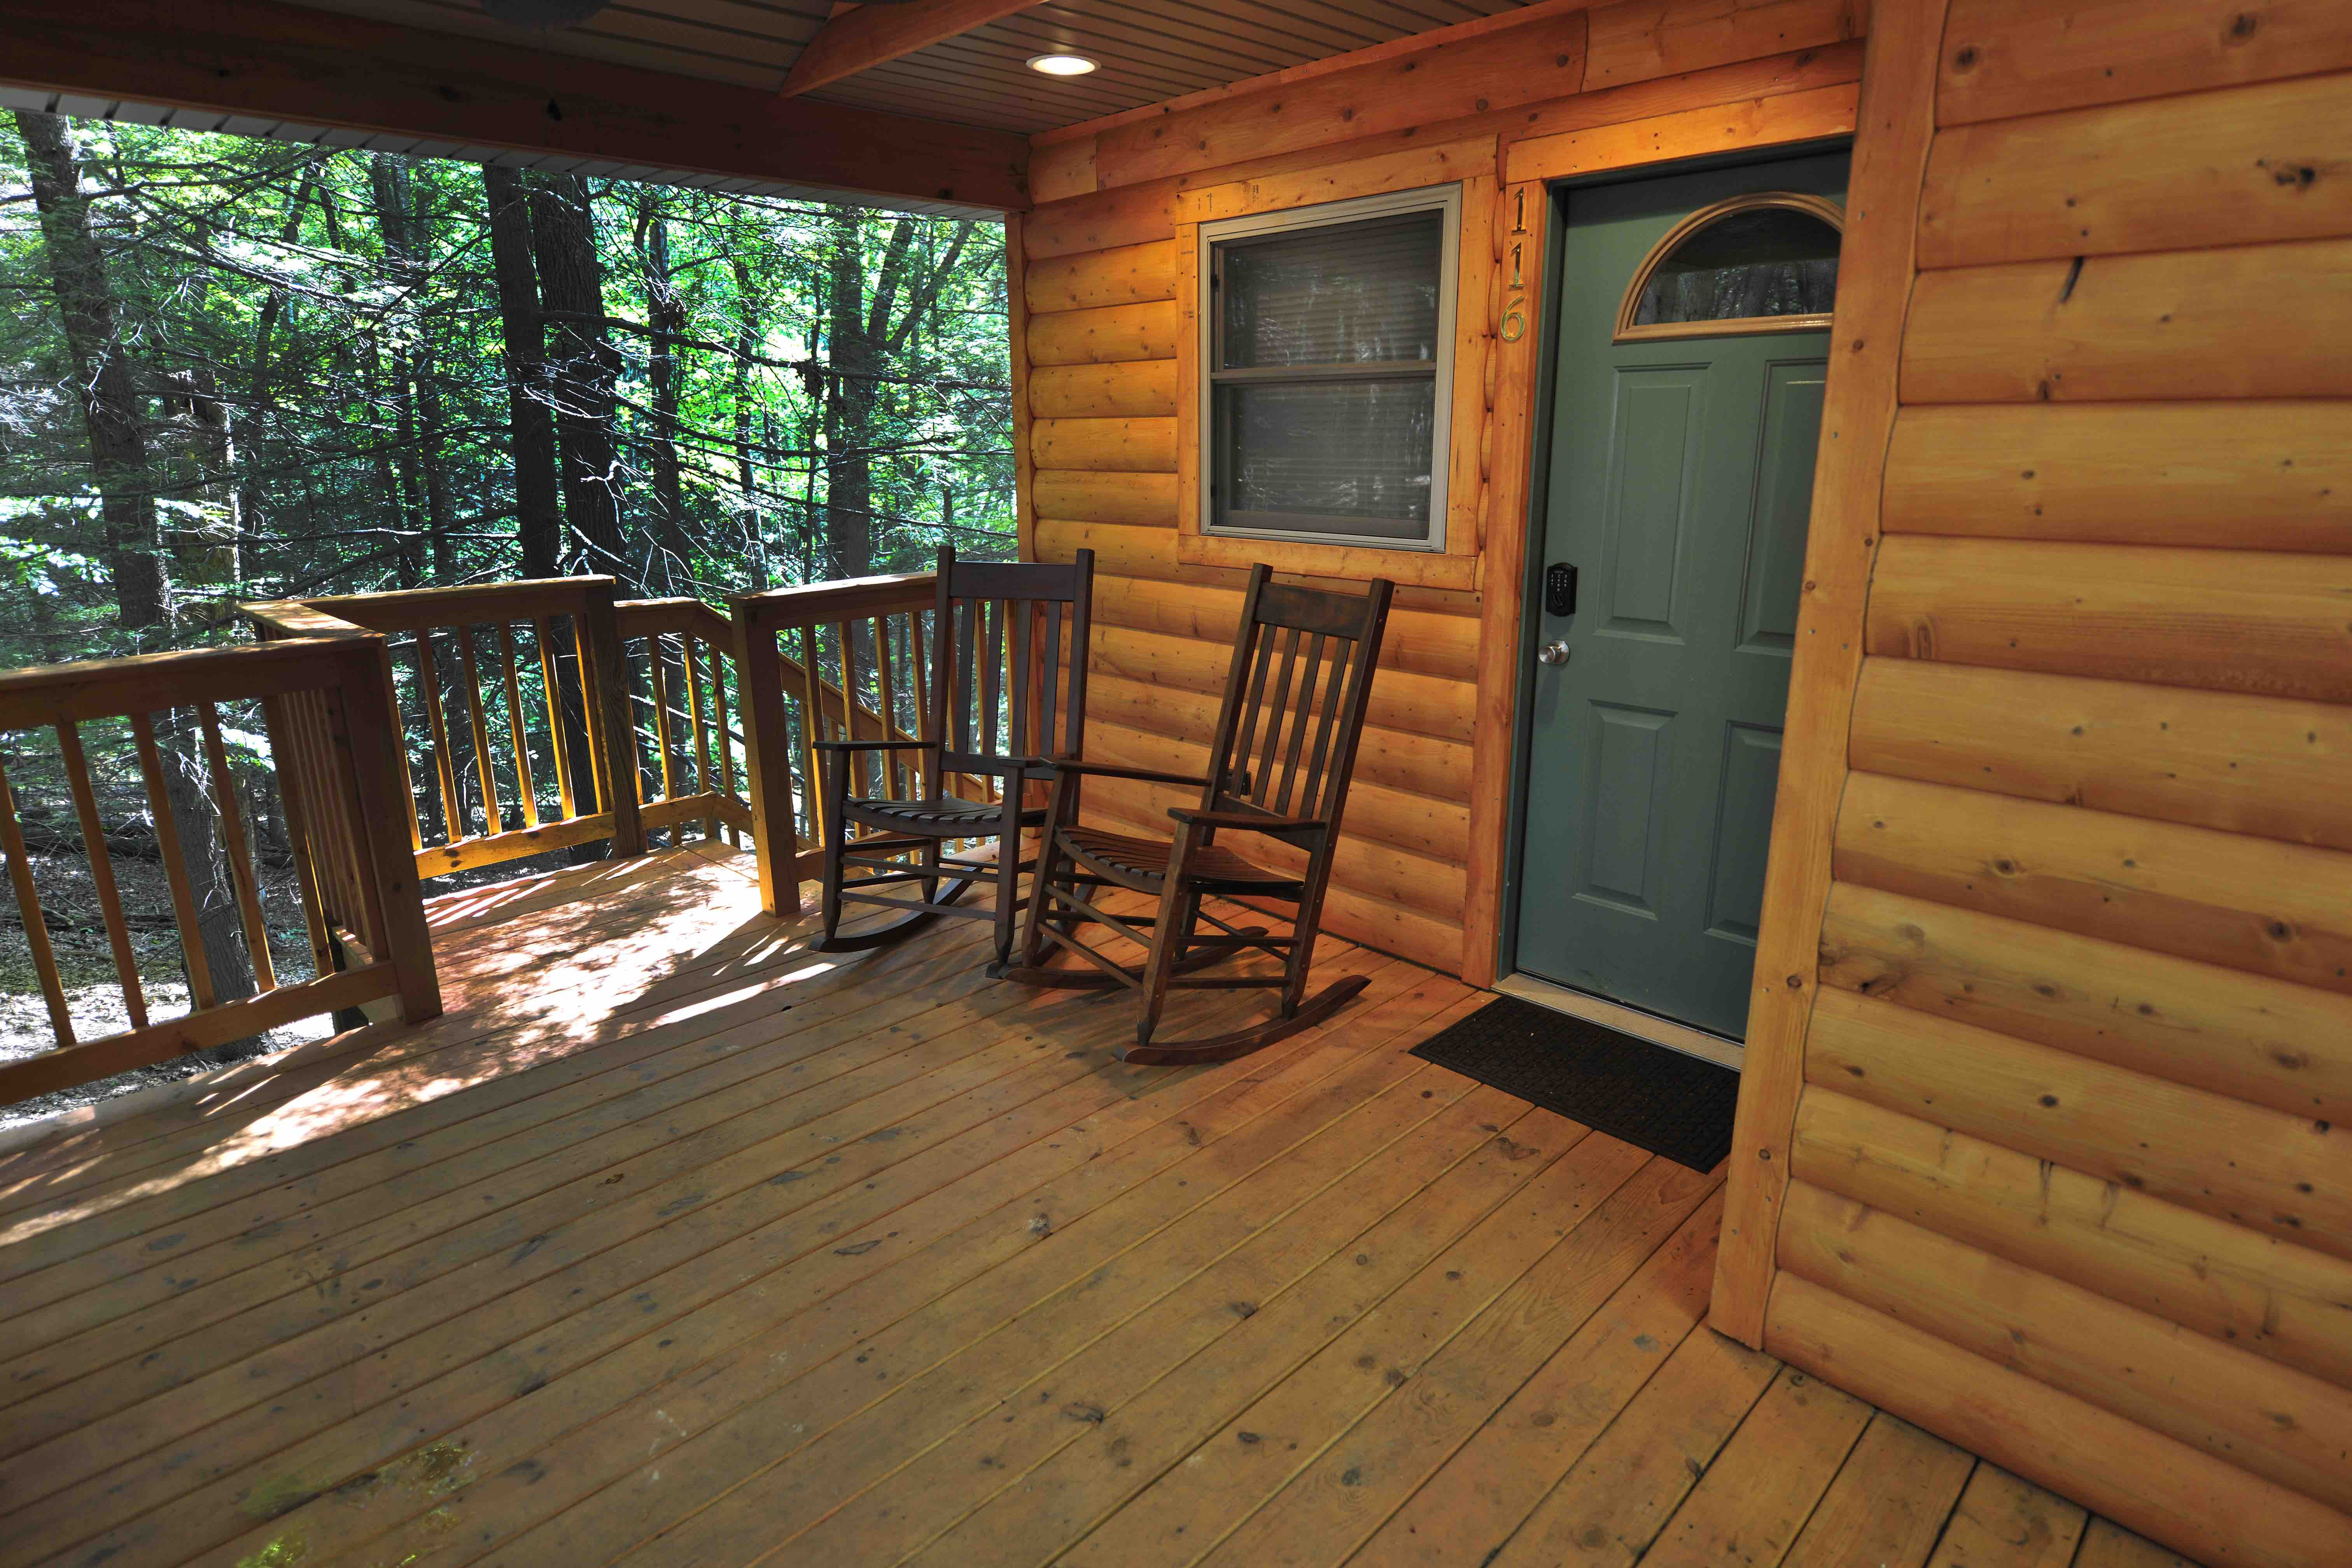 destination with minutes vacation mountainside just from cabins adjusted tub scenic property trains hot place home stone in elkins wv live and group laurel a for entertainment